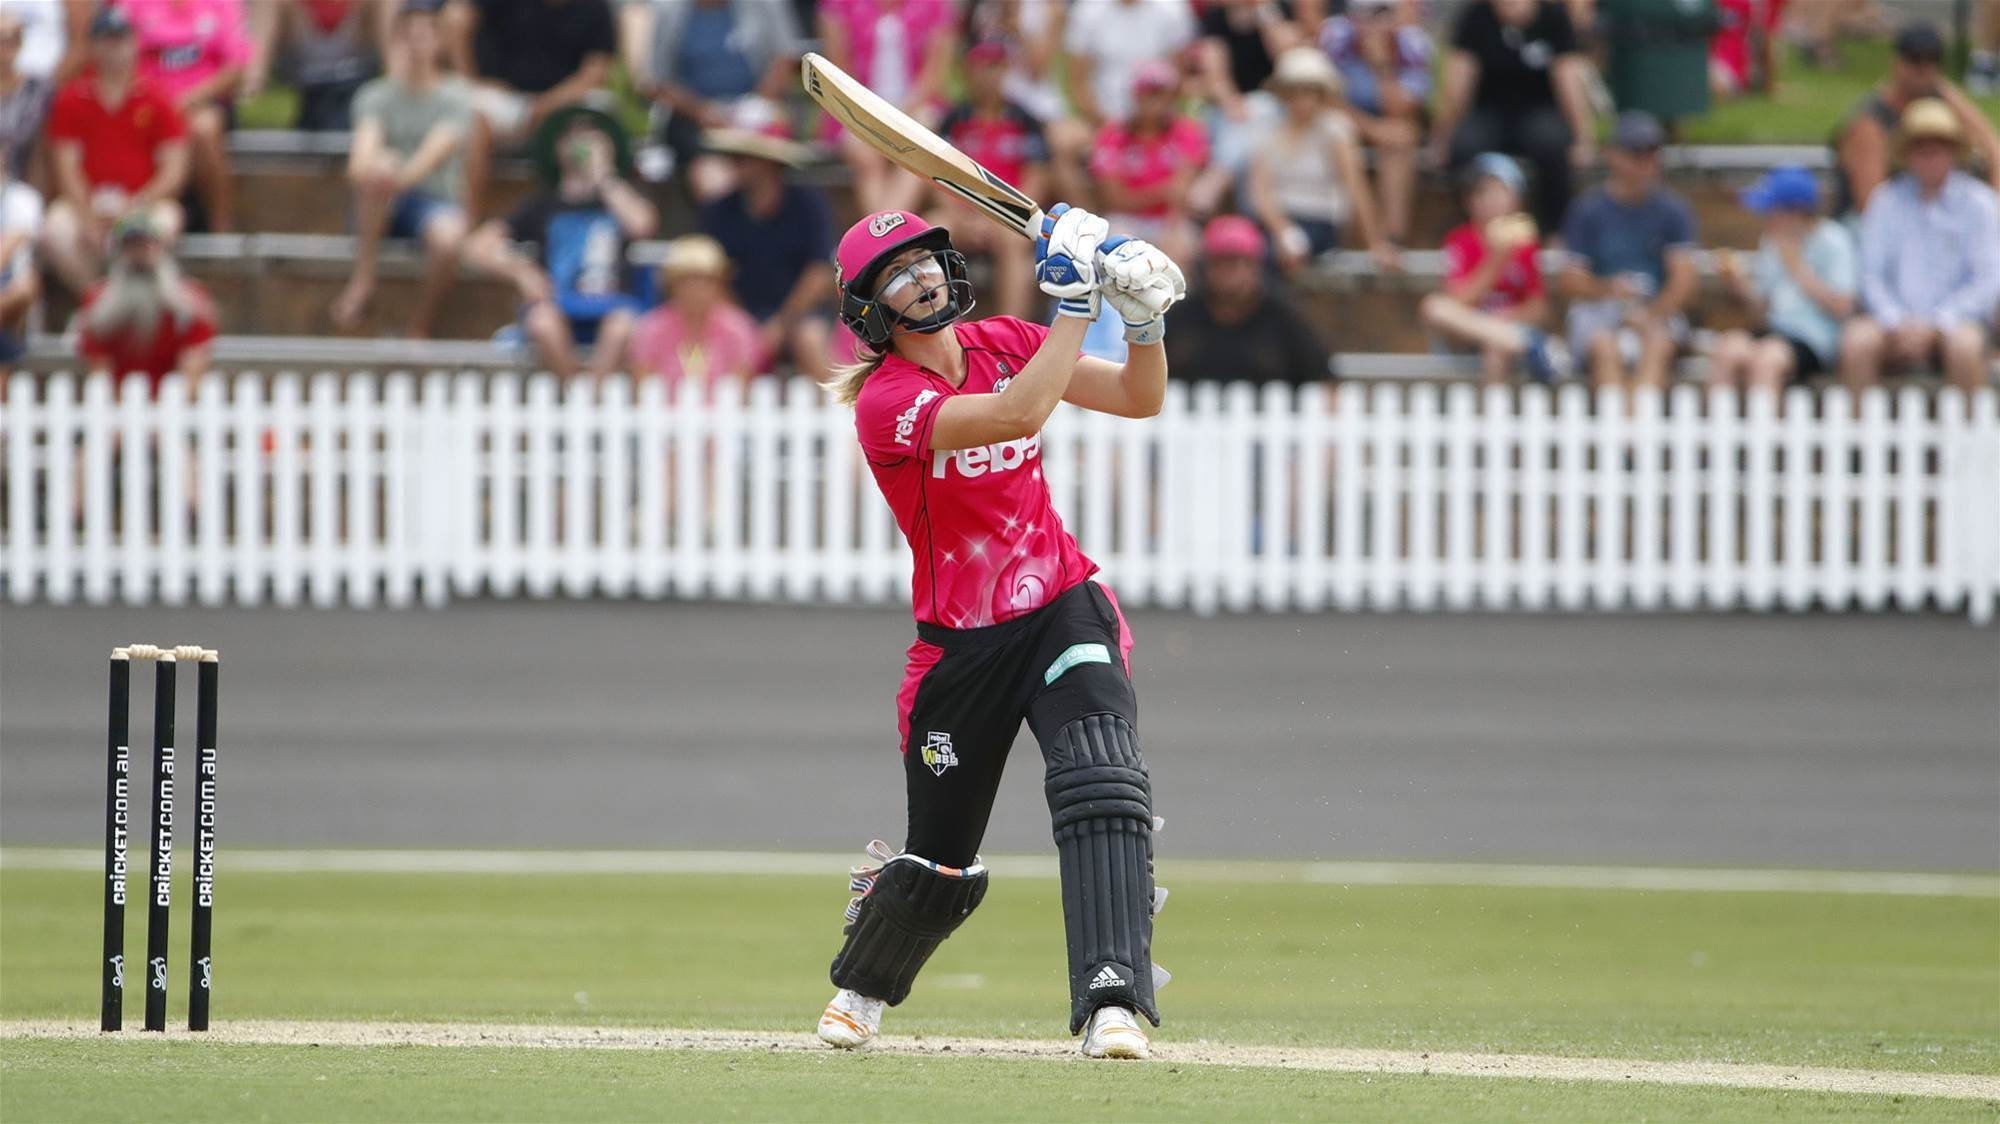 WBBL to become standalone competition